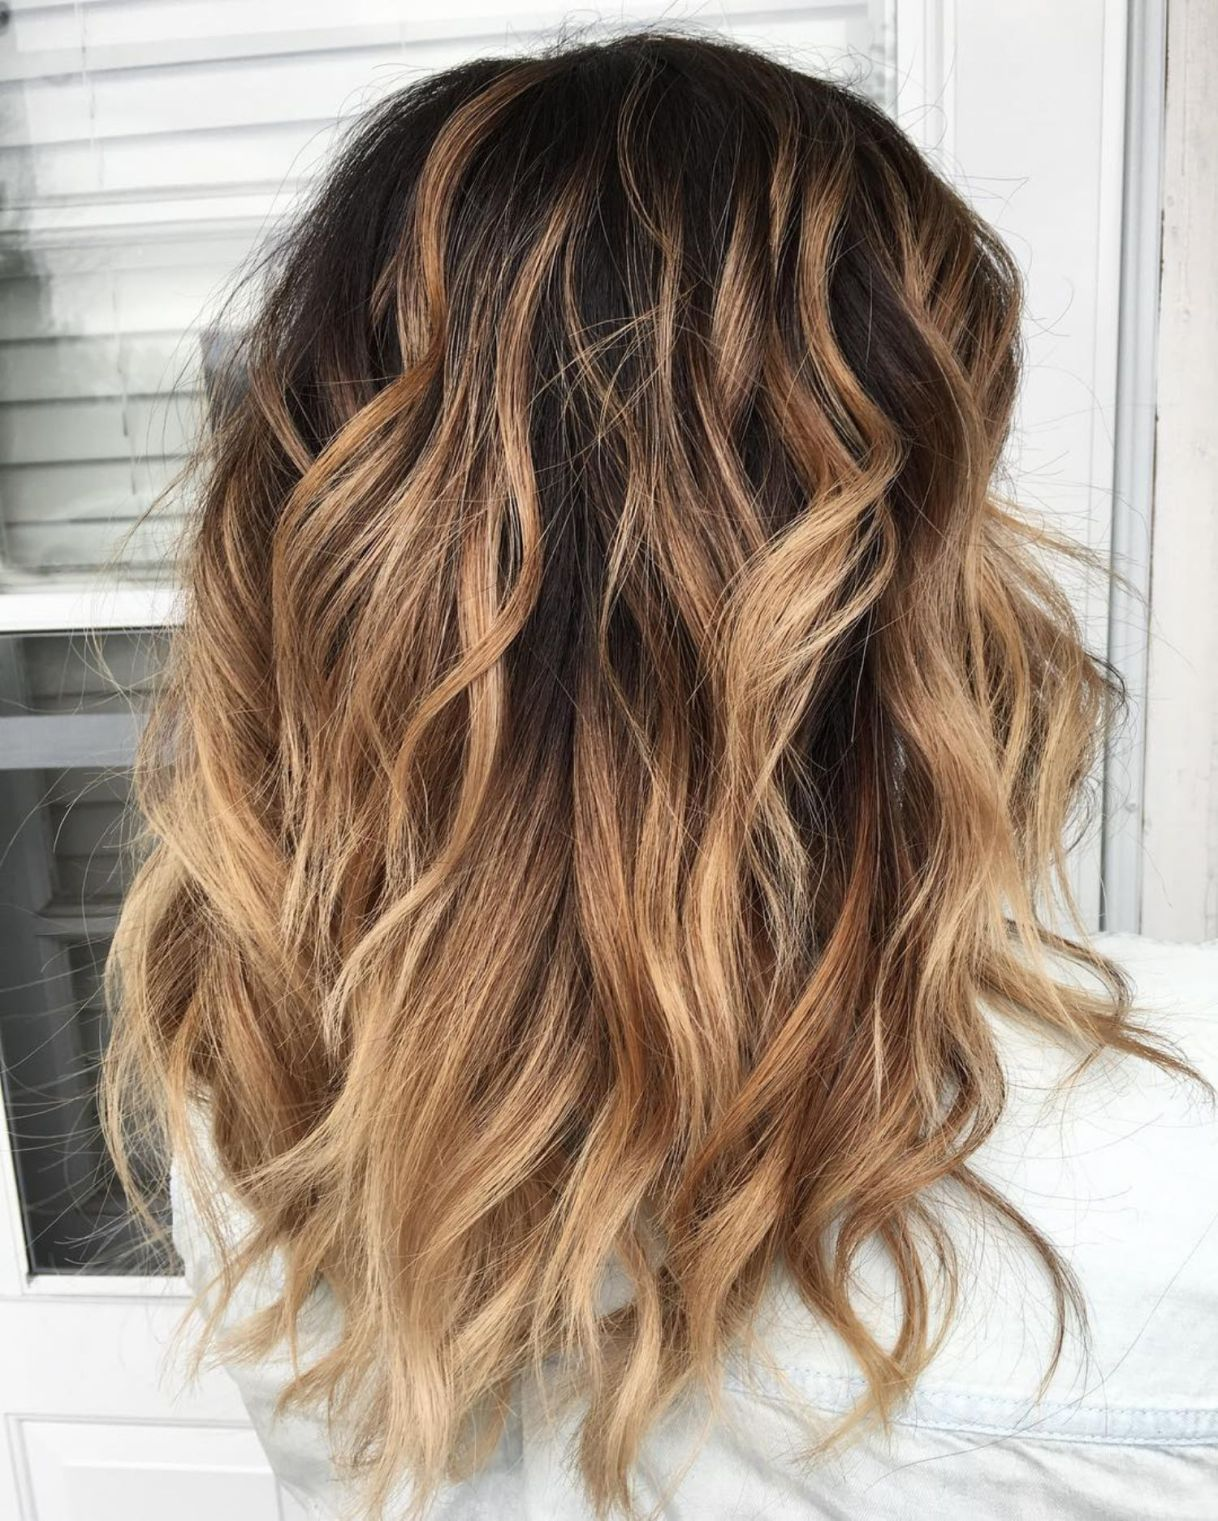 60 Most Magnetizing Hairstyles For Thick Wavy Hair Wavy Hairstyles Medium Medium Length Hair Styles Medium Length Curly Hair